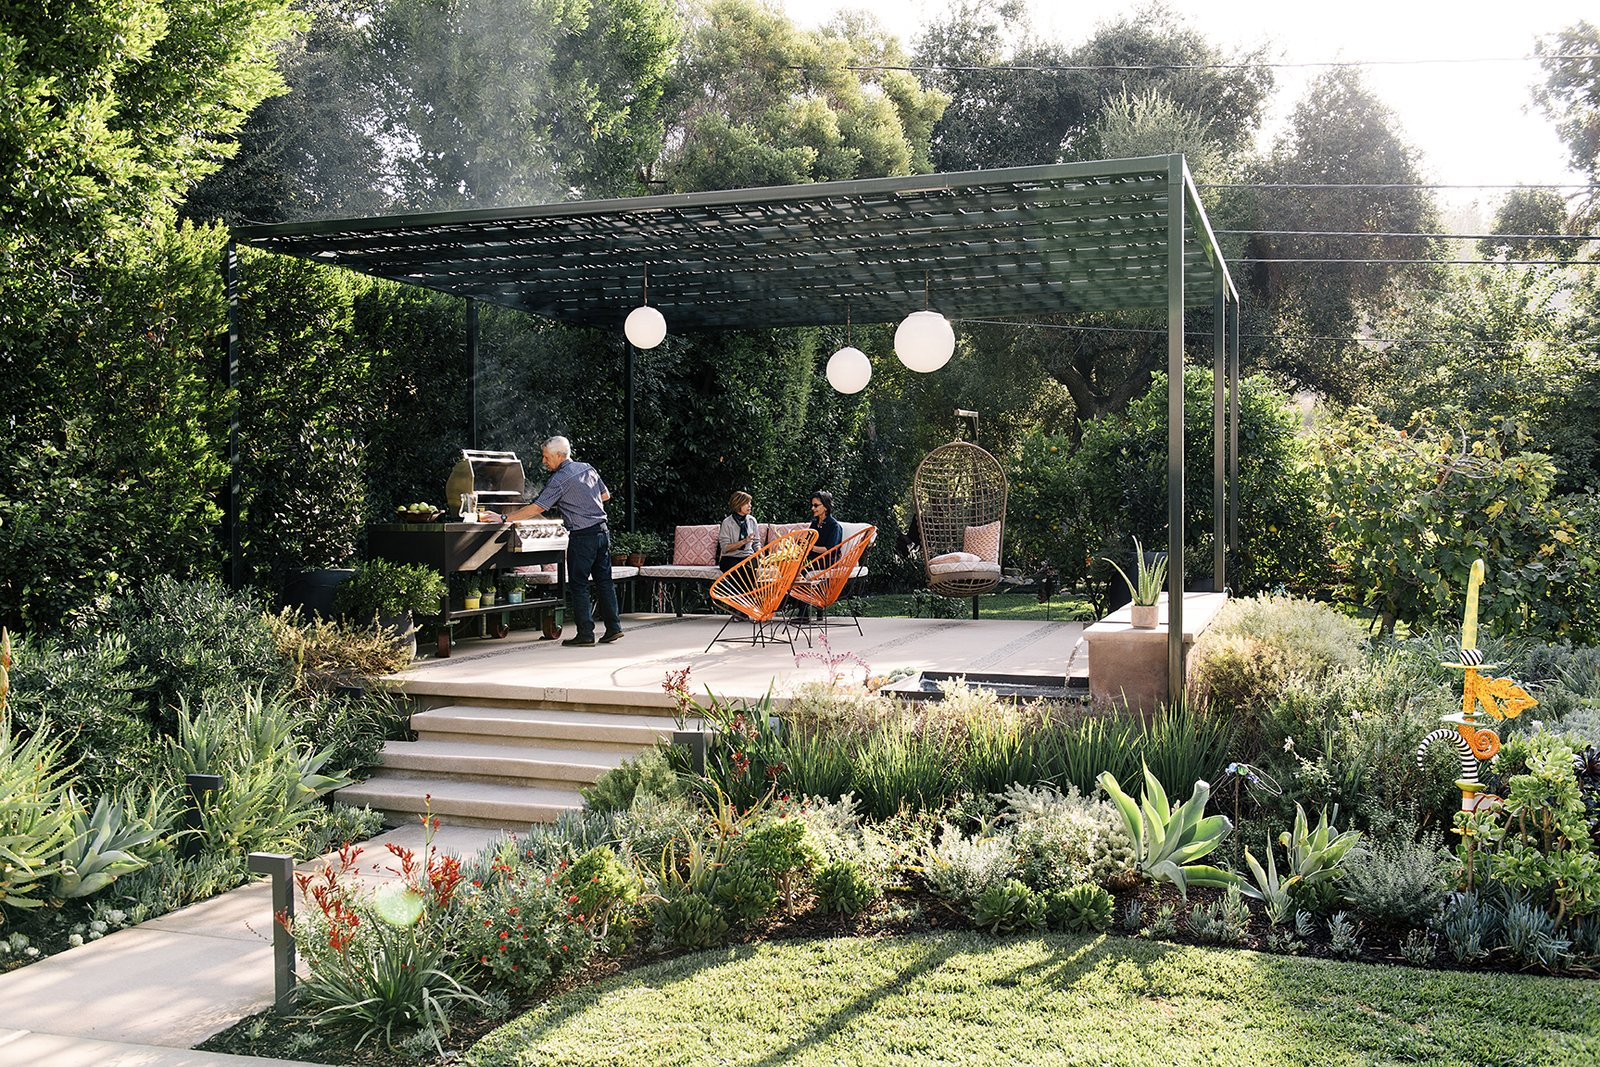 Outdoor, Back Yard, Trees, Shrubs, Flowers, Gardens, Walkways, Large Patio, Porch, Deck, Metal Fences, Wall, Hanging Lighting, and Landscape Lighting Landscape designer Lillian Montalvo swapped disparate plantings for a cohesive plan centered on a pergola. The elevated, covered deck acts like a less constricted gazebo with more air flow.   Photo 10 of 11 in Dwell's Top 10 Outdoor Spaces of 2017 from A Laser-Cut Pergola Completes a Tranquil Garden in L.A. That's Perfect For Entertaining